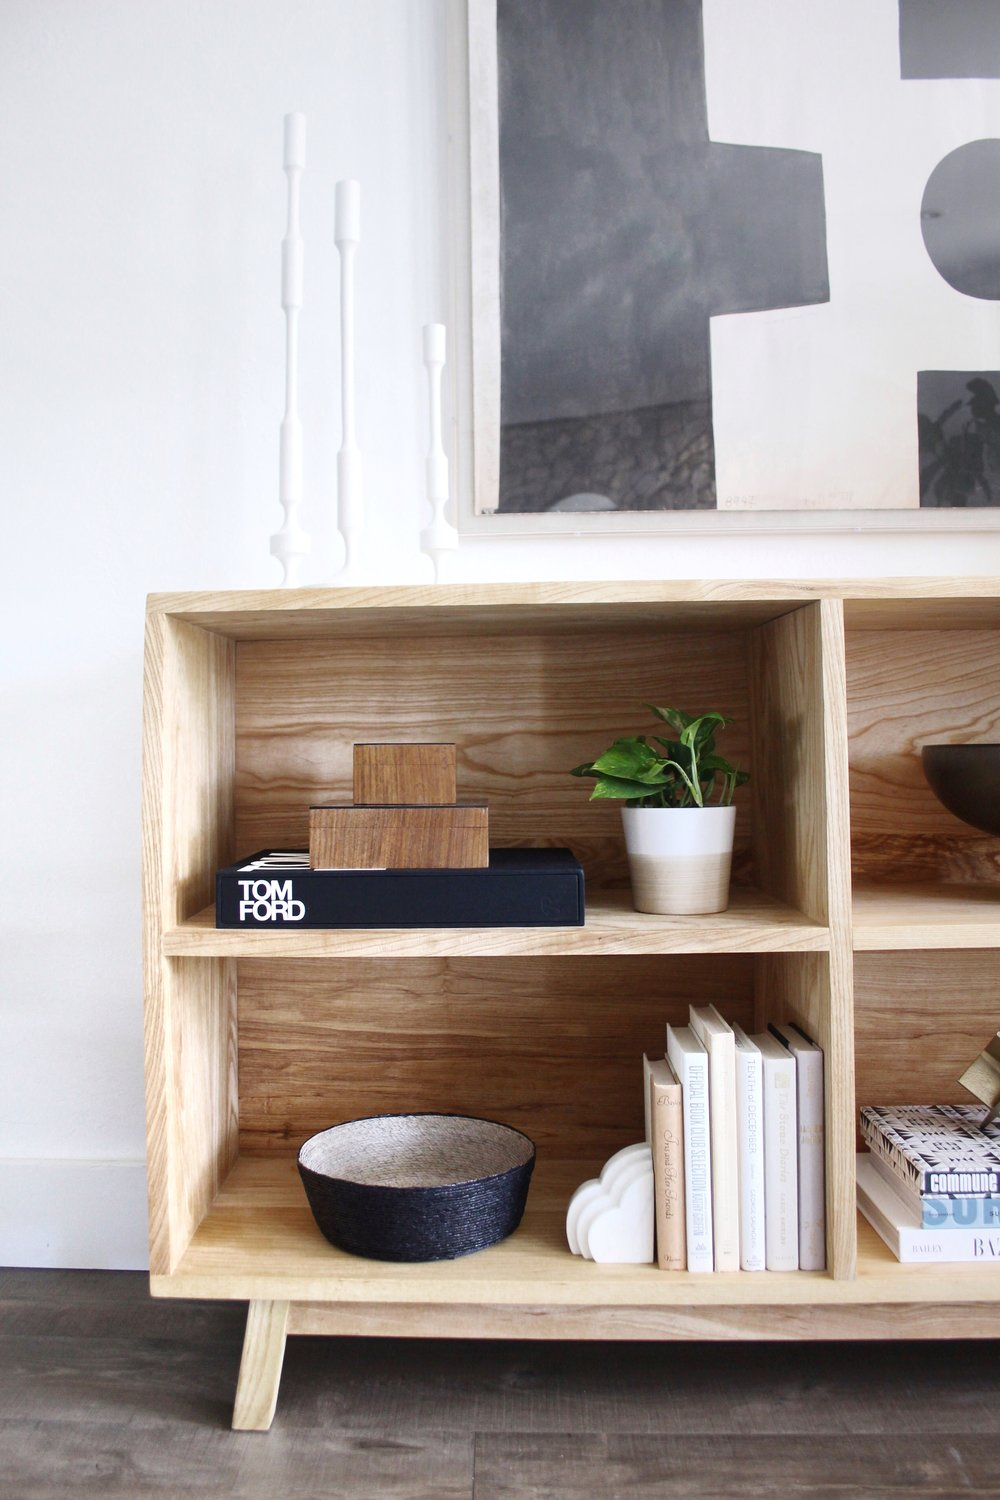 open shelf styling in console  - #projectmidcenturymuse - the habitat collective interior design